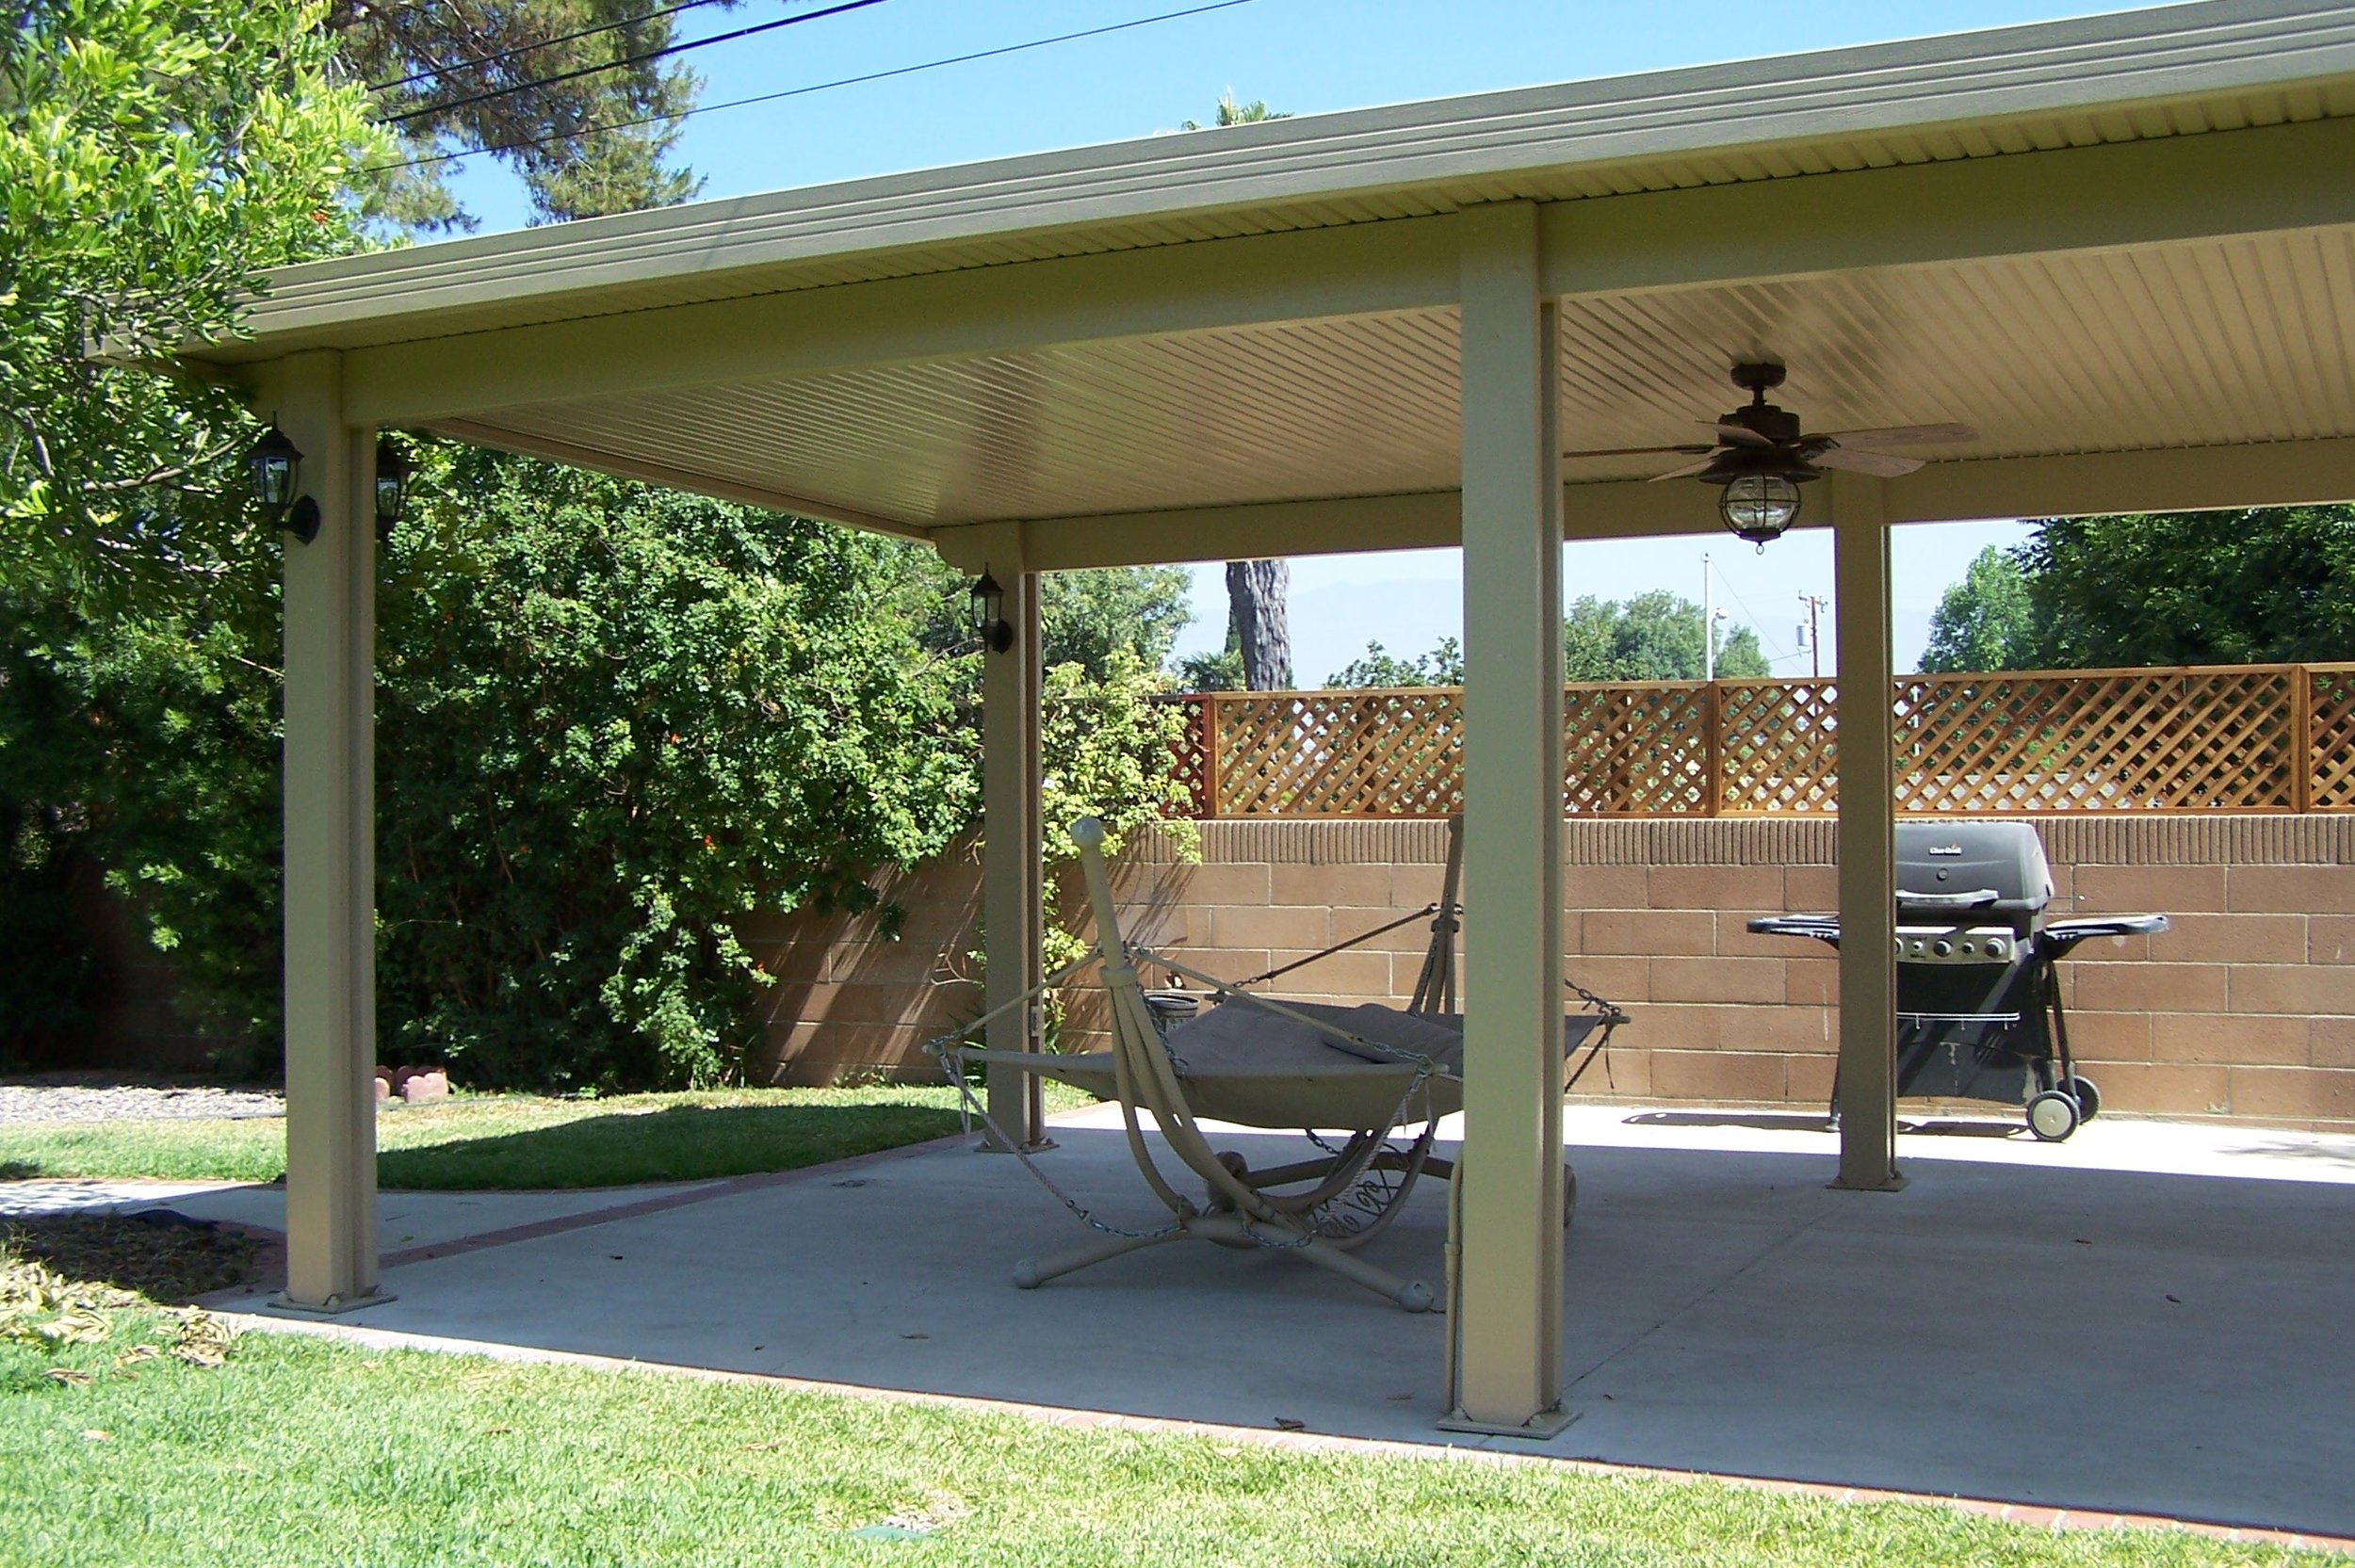 A great way to turn an unusable patio into a shaded space to relax. It will also shade windows and doors making those rooms more comfortable. Also helps to lower patio temperatures an average of 20 degrees.